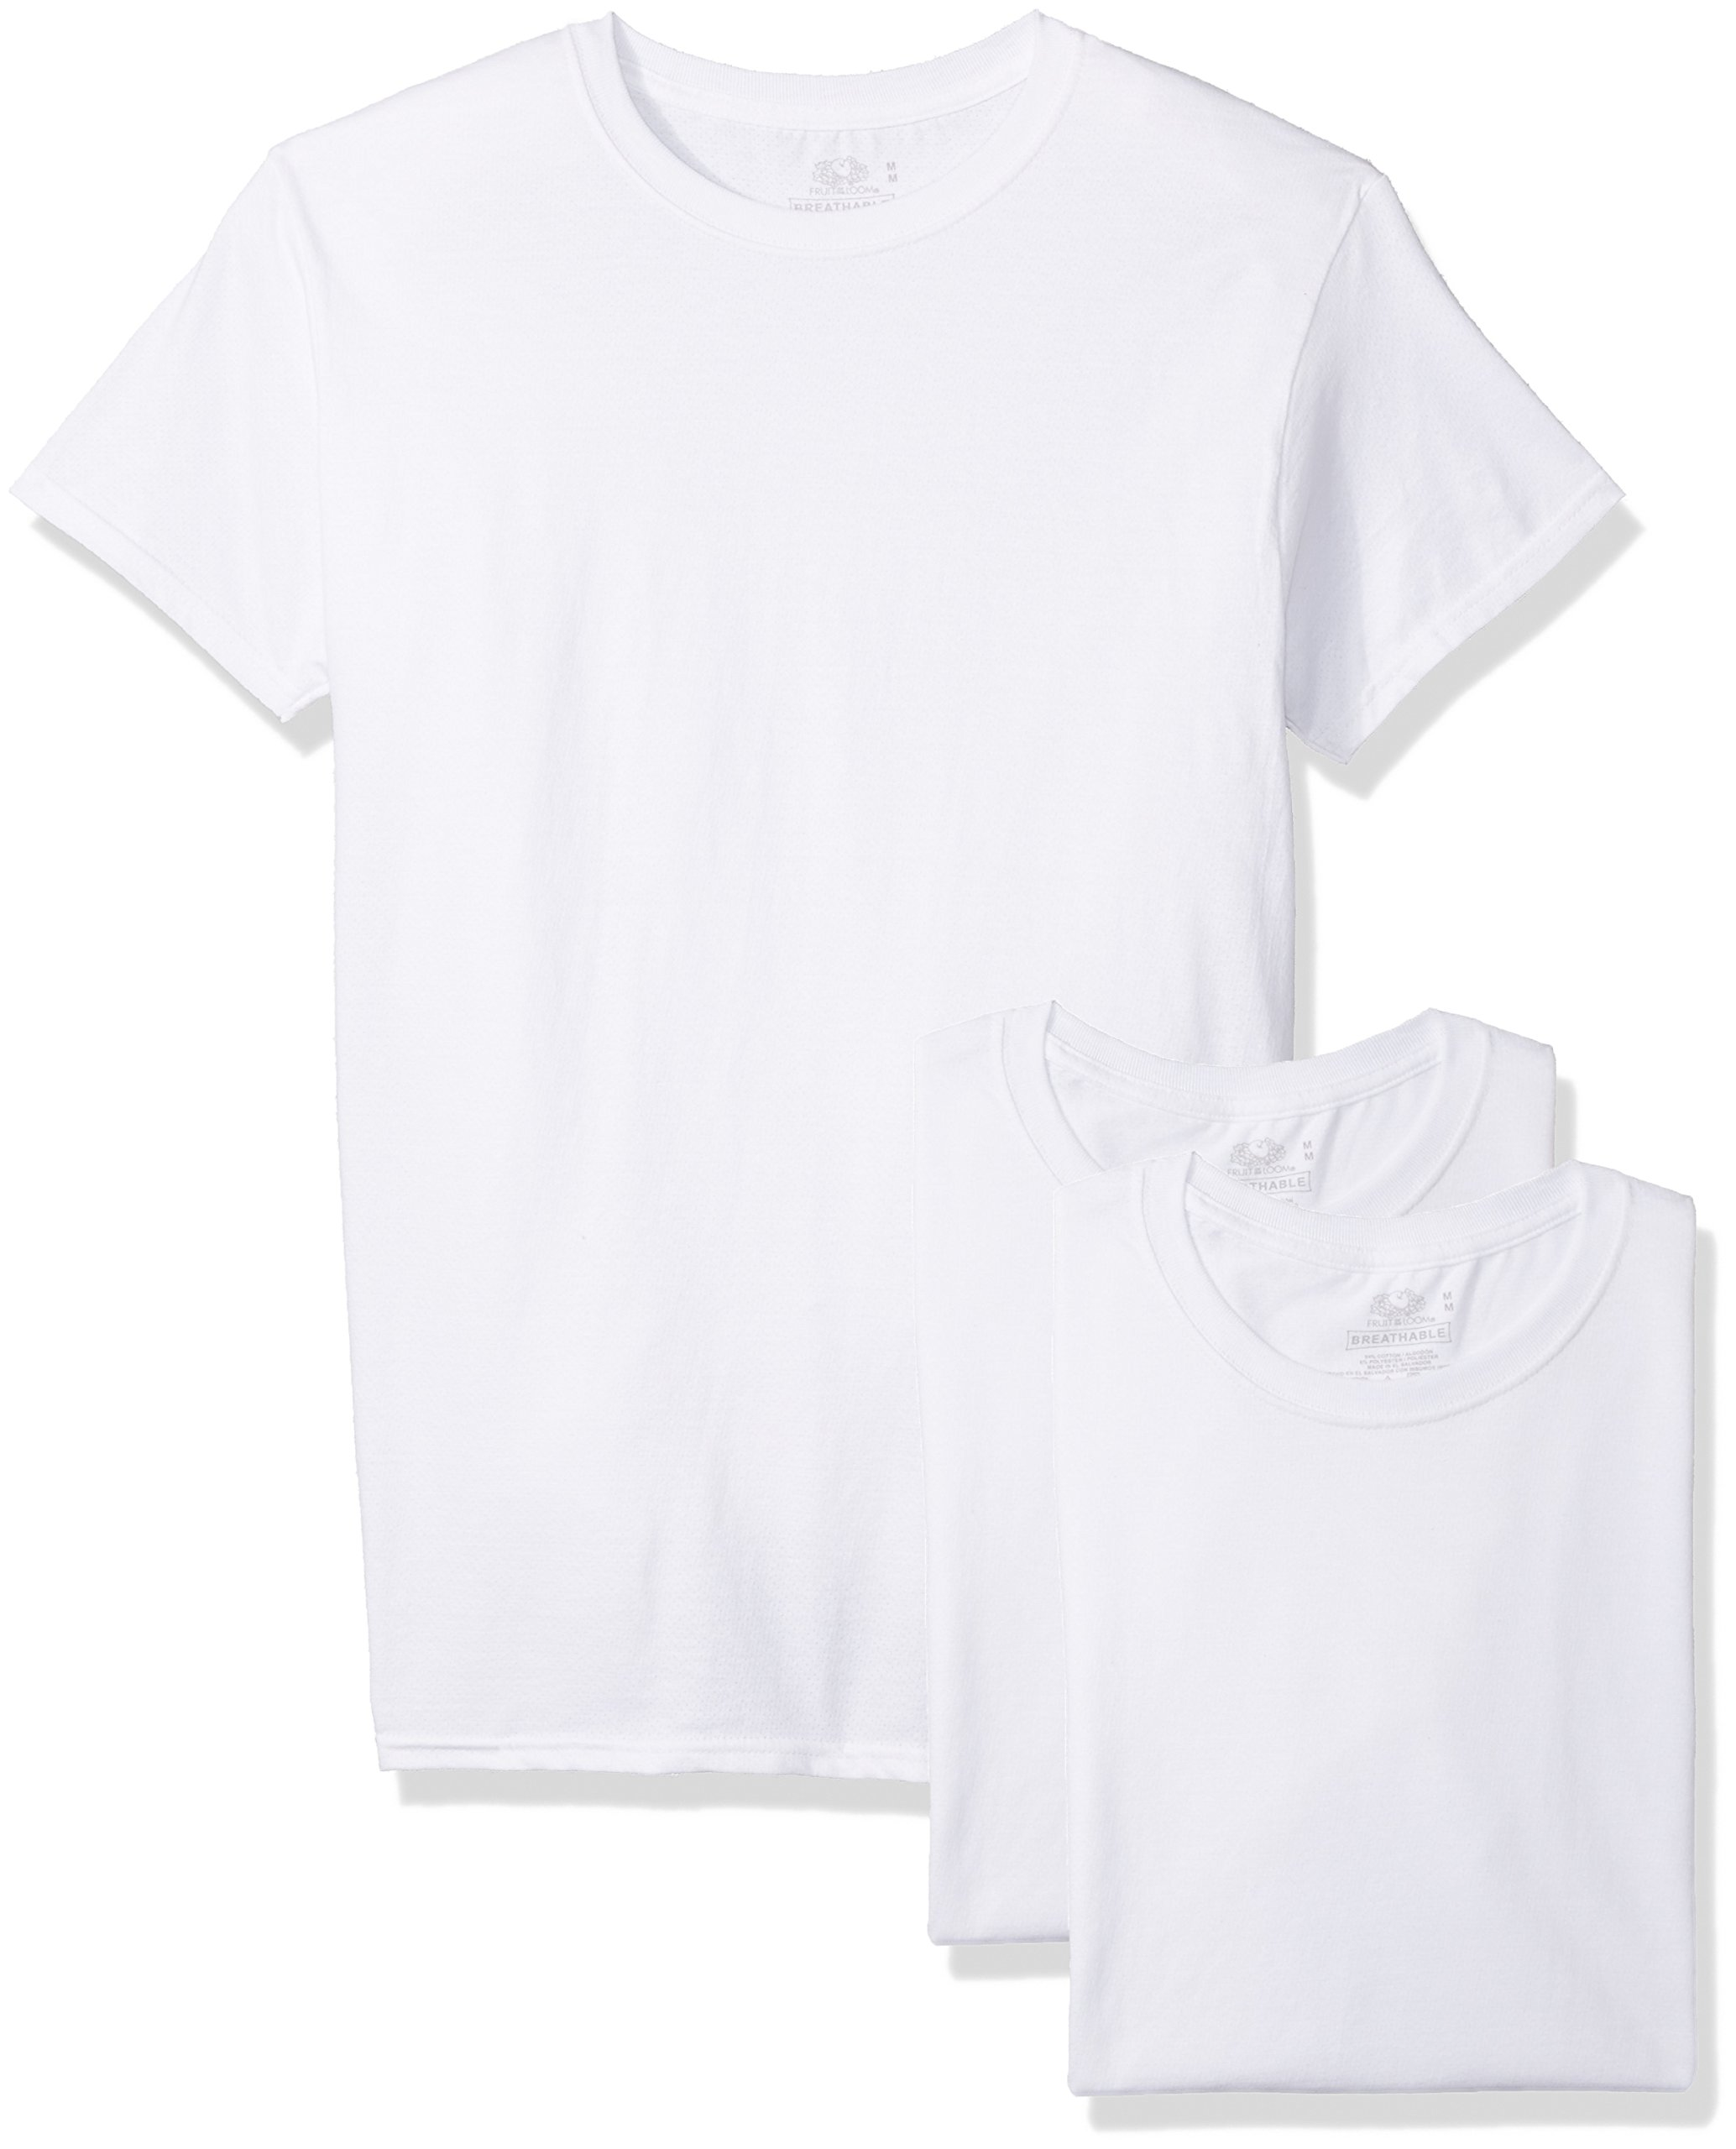 Fruit of the Loom Men's 3-Pack Breathable Crew T-Shirt, white ice, Large by Fruit of the Loom